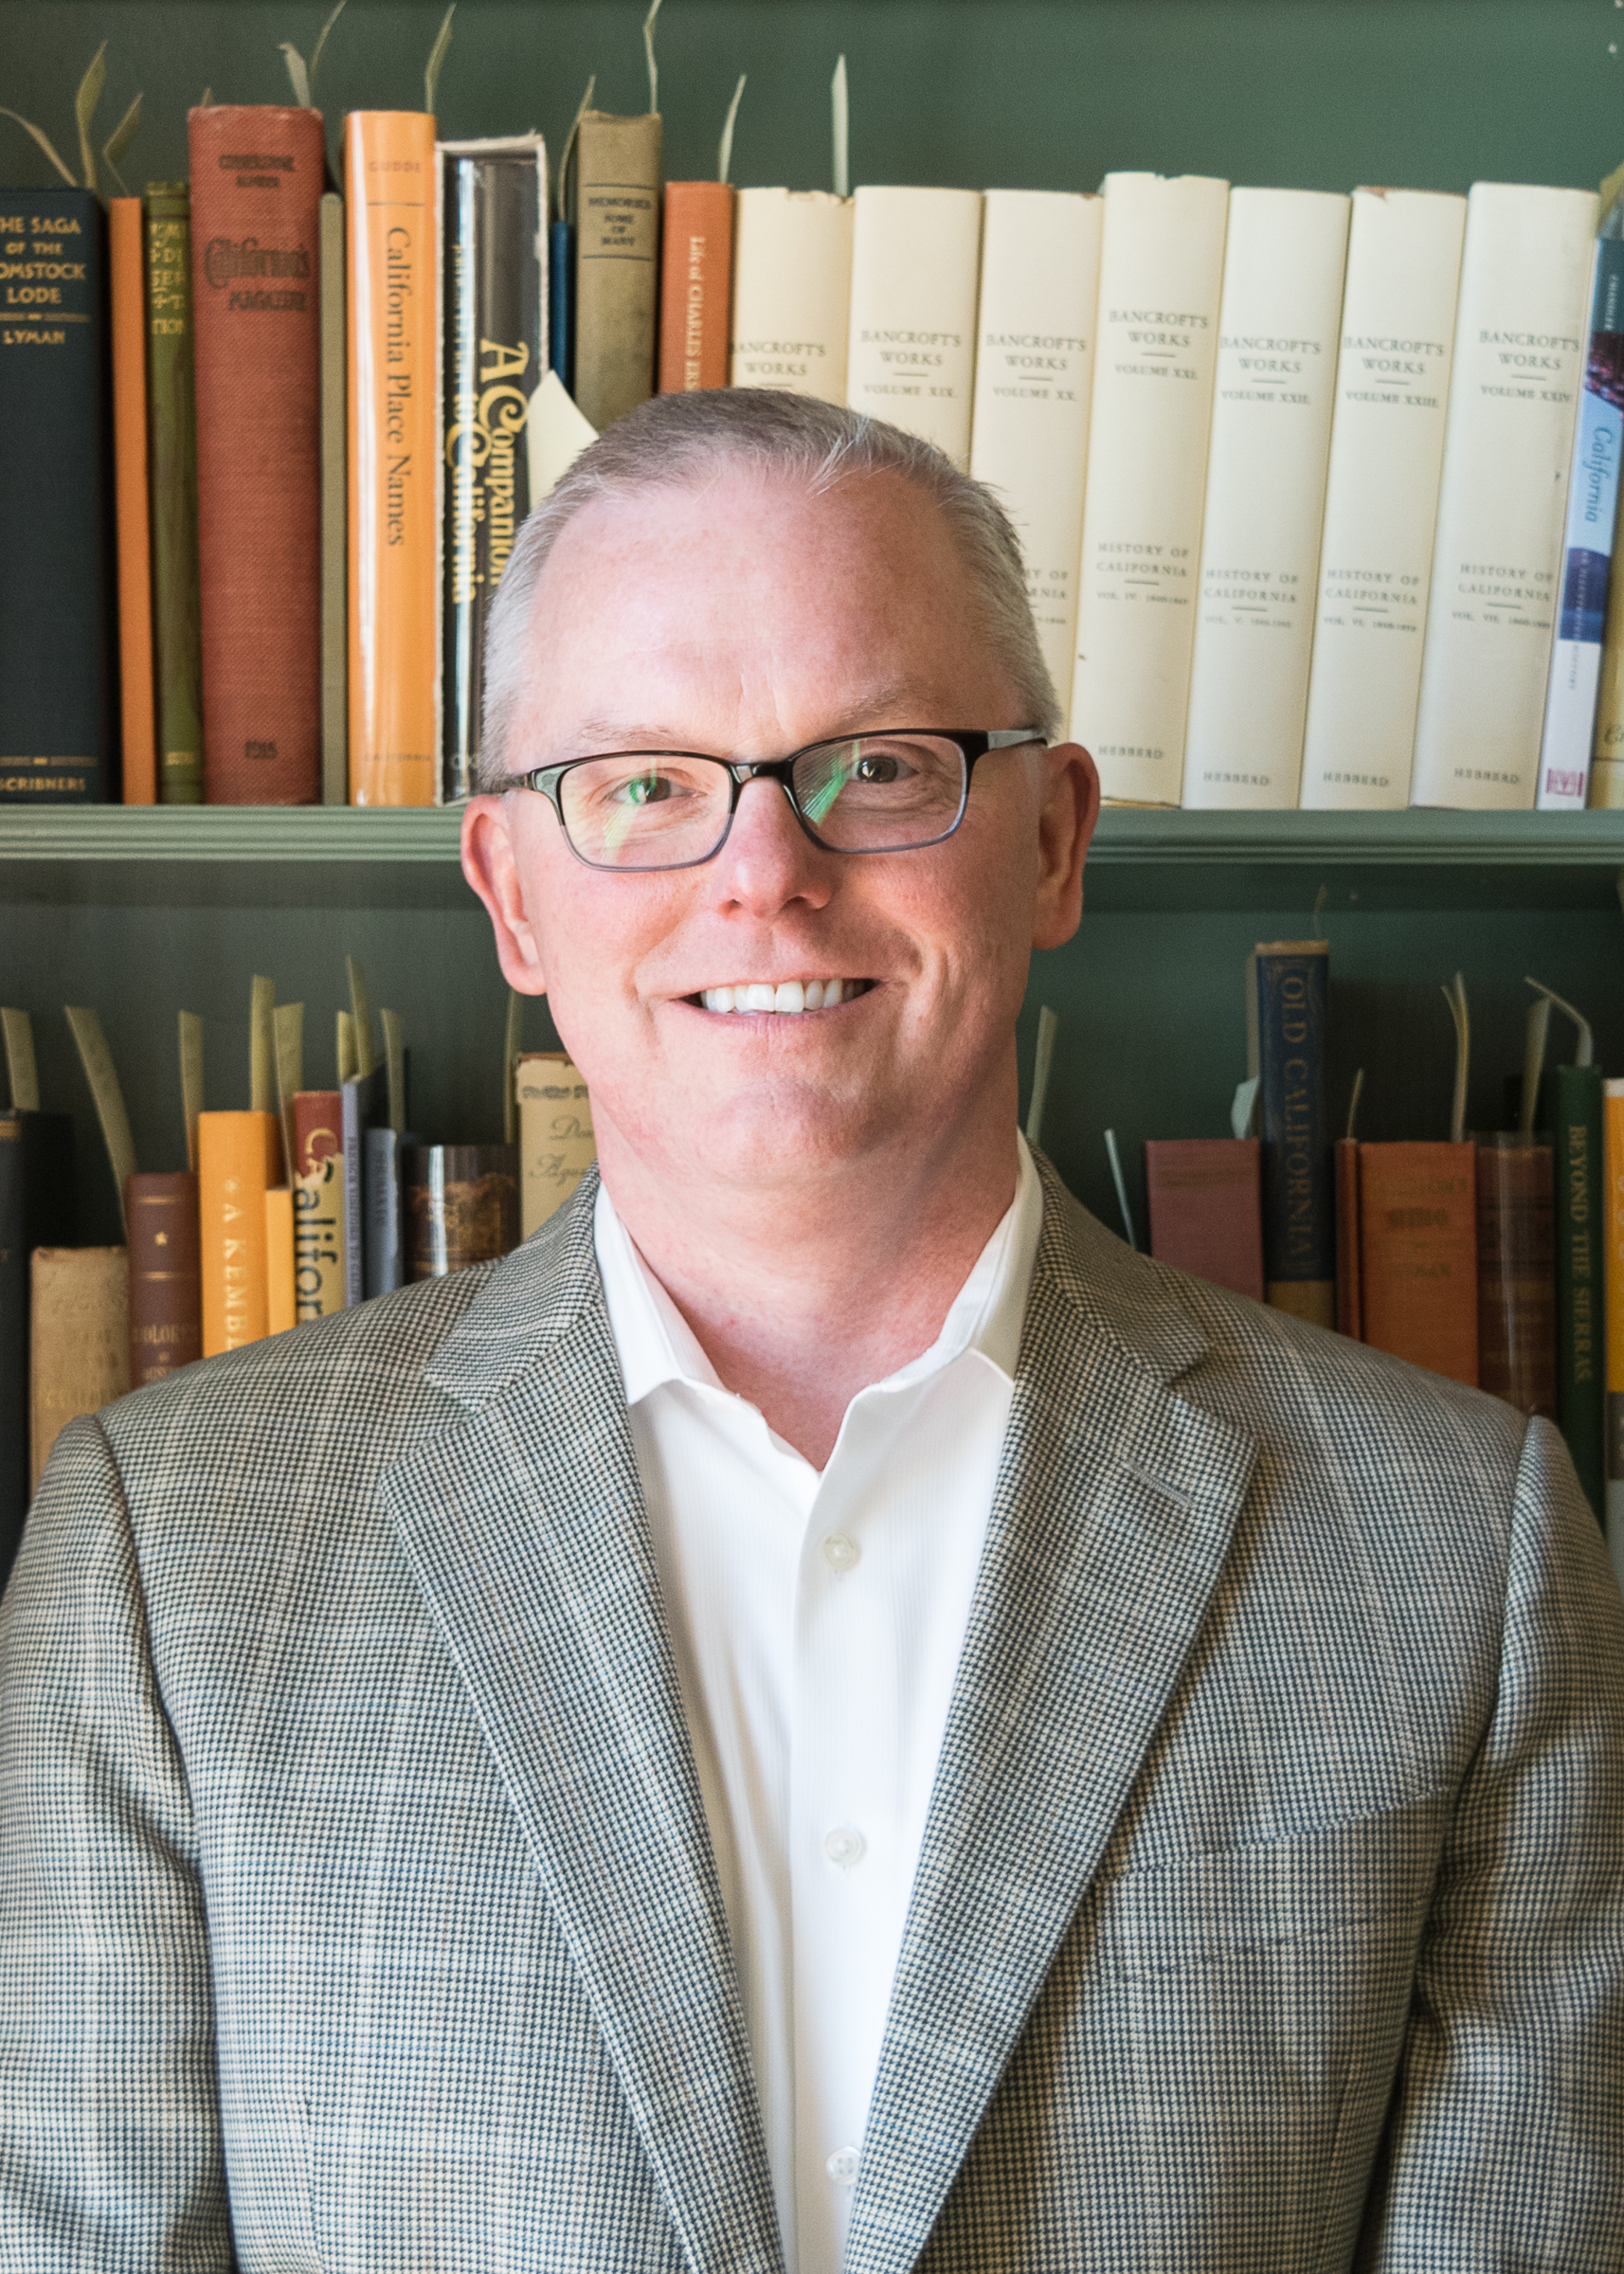 Originally from New York, Kevin earned a Bachelor of Arts degree from State University of New York College at Buffalo and a Masters degree in Theatre Arts from the University of Illinois in Chicago. He has more than 25 years of experience working in the nonprofit sector and is a Certified Fund Raising Executive (CFRE). He has held senior leadership and resource development positions with the Chicago Youth Symphony, American Lung Association in California (Greater Bay Area and Sacramento), Pets Are Wonderful Support (PAWS), YMCA of the Central Bay Area, Peralta Colleges Foundation, and Sierra Club. He is currently the Executive Director for the Book Club of California. Kevin joined the KML Board of Directors in June 2018.